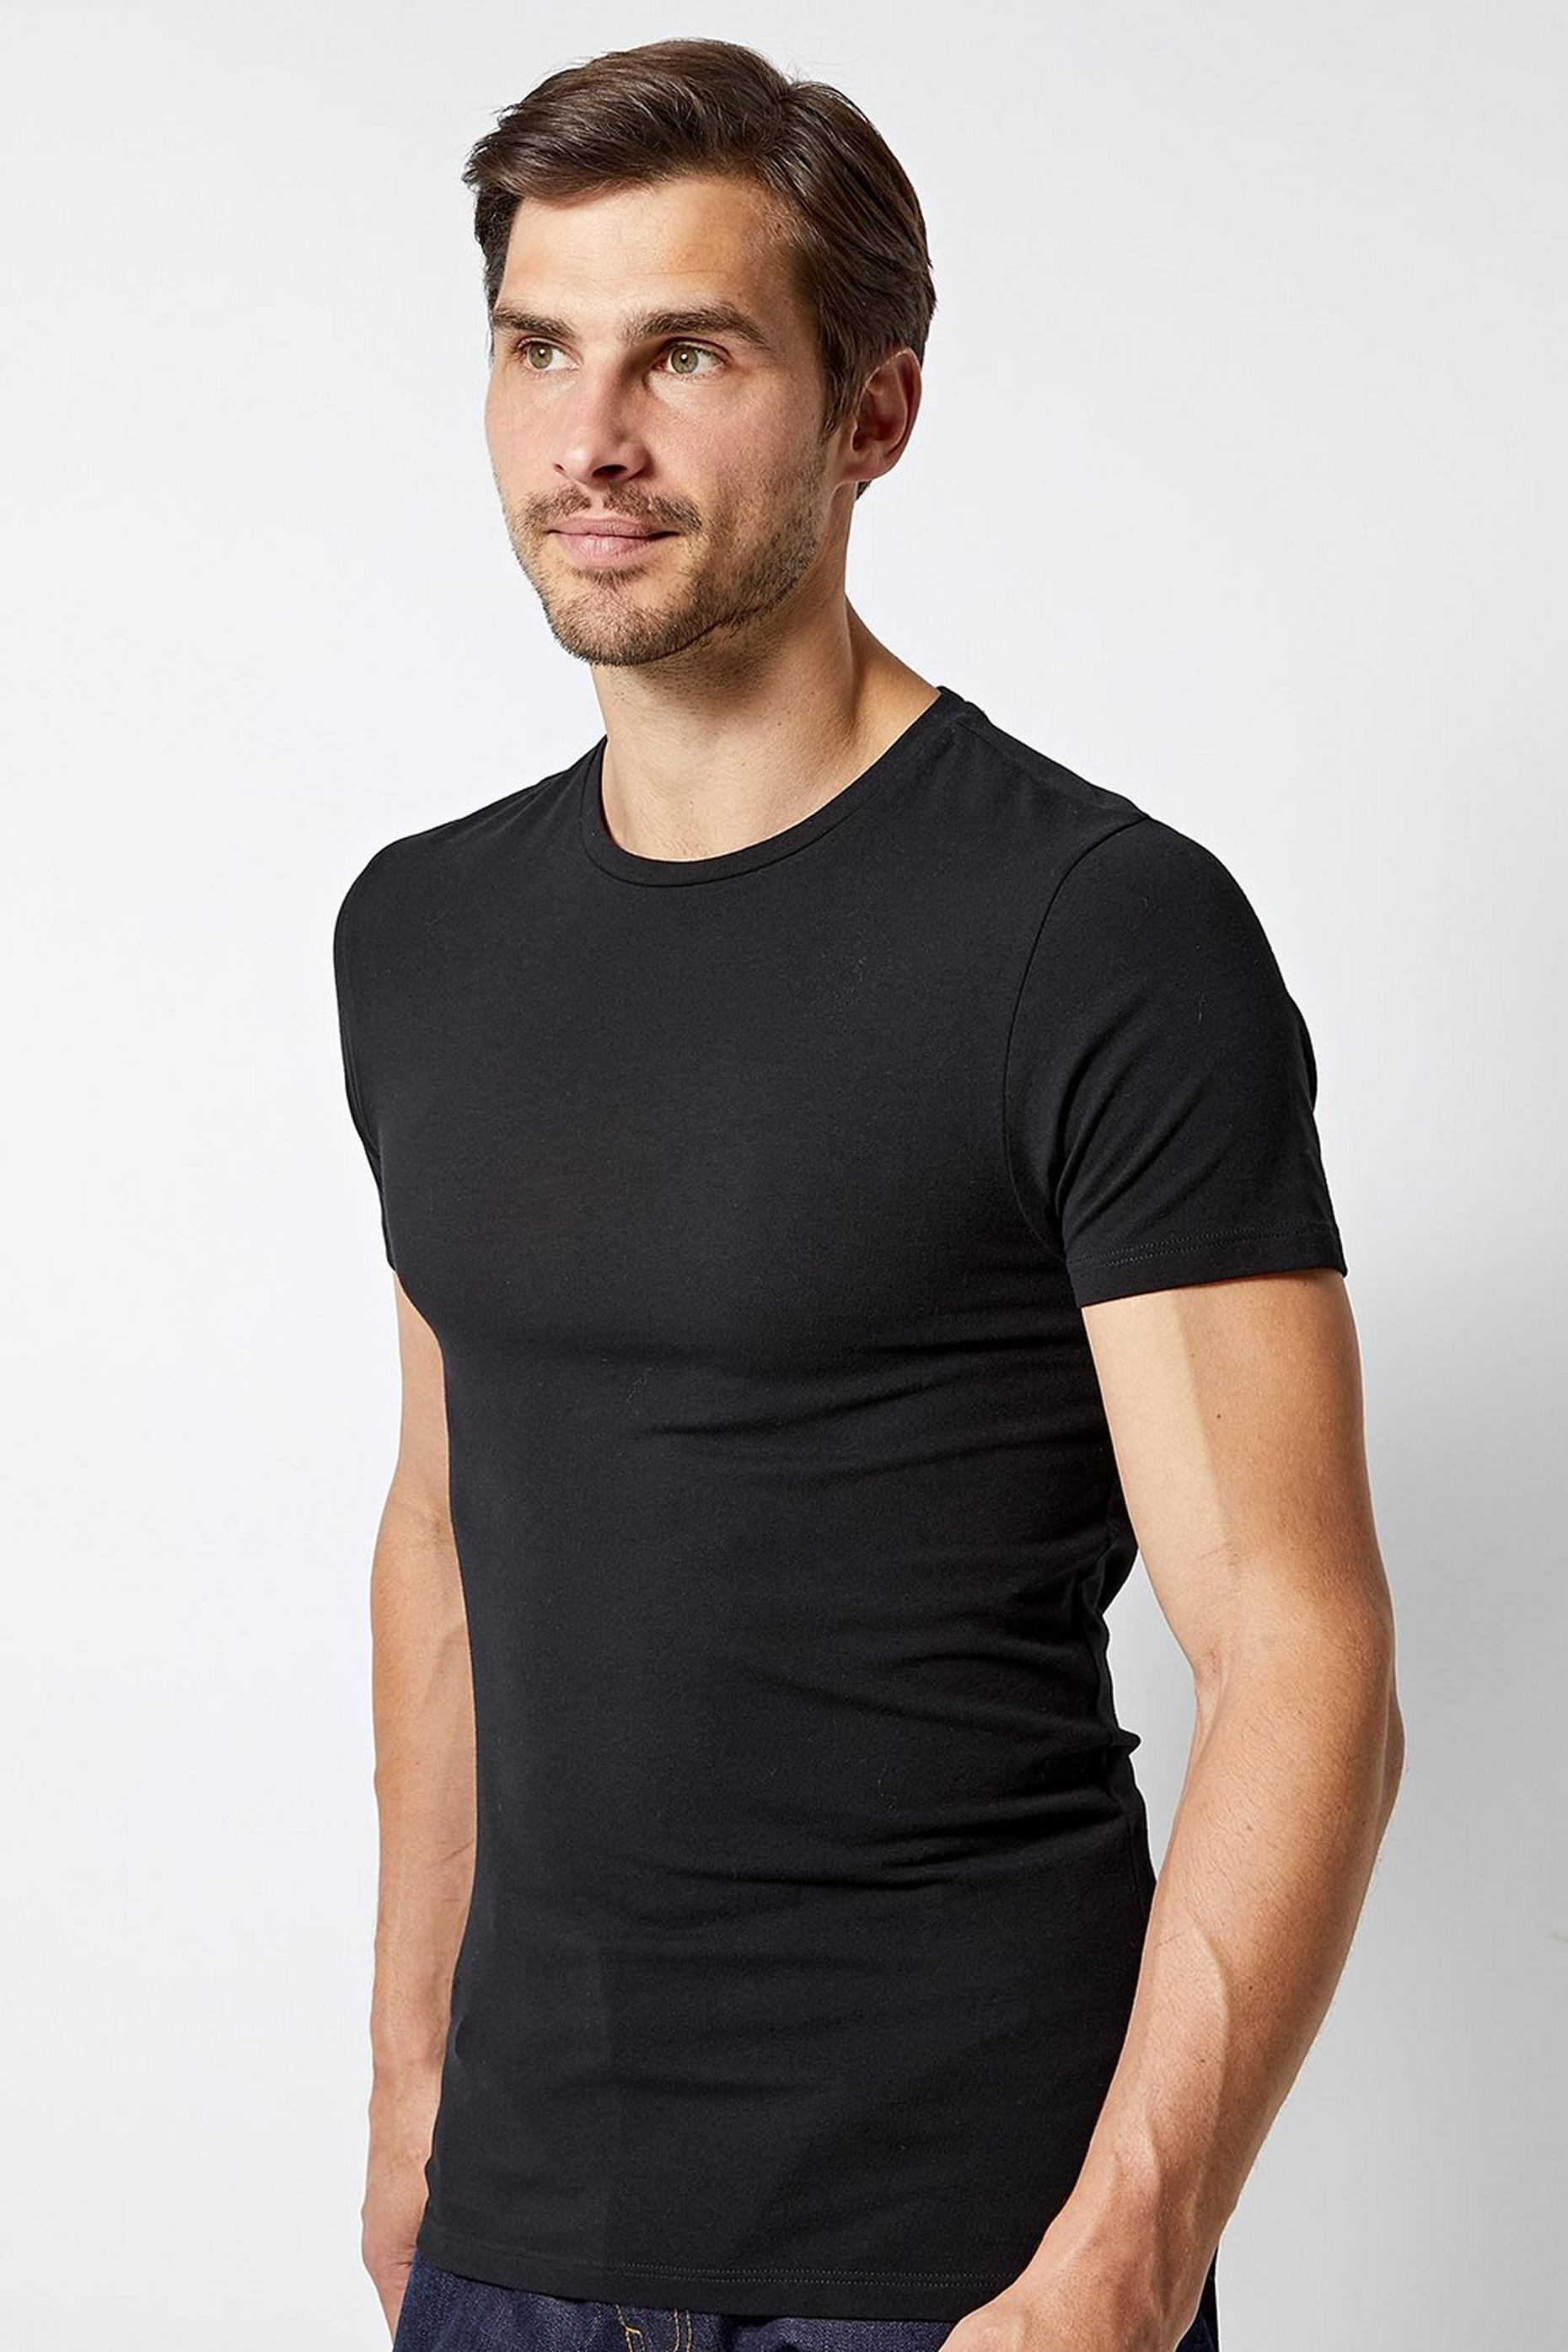 Black Muscle Fit Crew Neck T Shirt